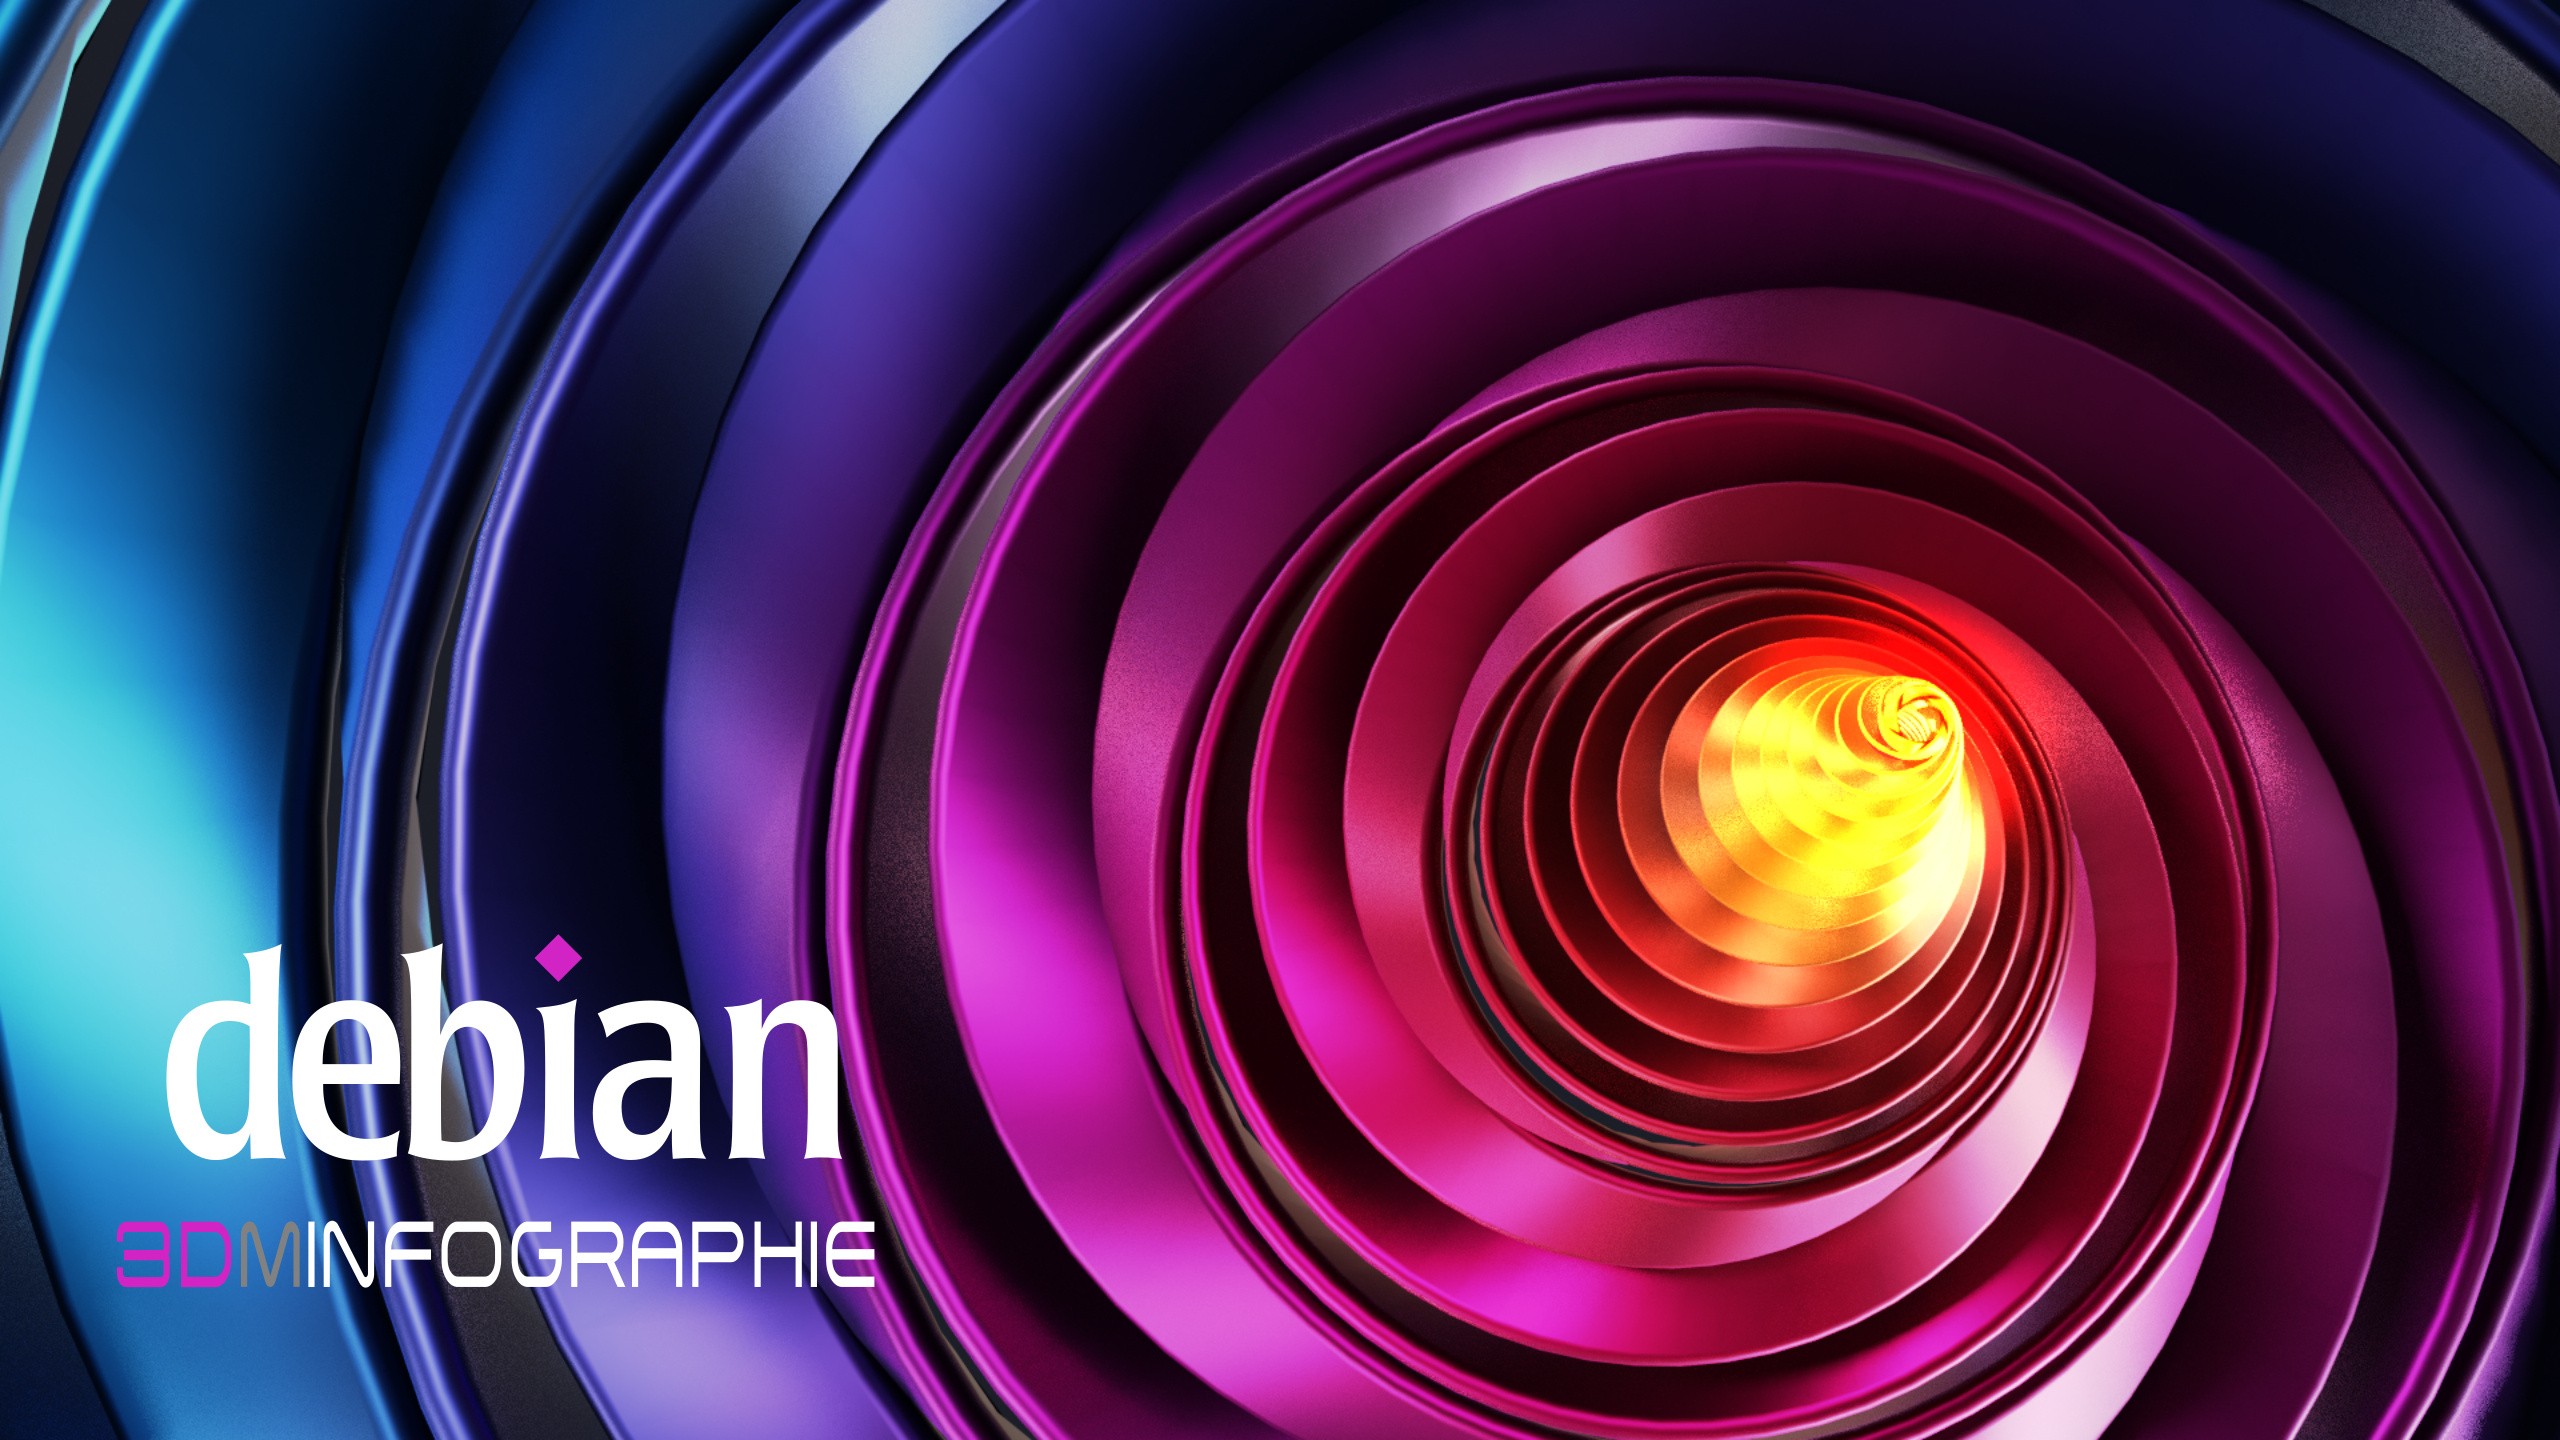 background_debian_helice_a_pas_variable_twist1.jpg